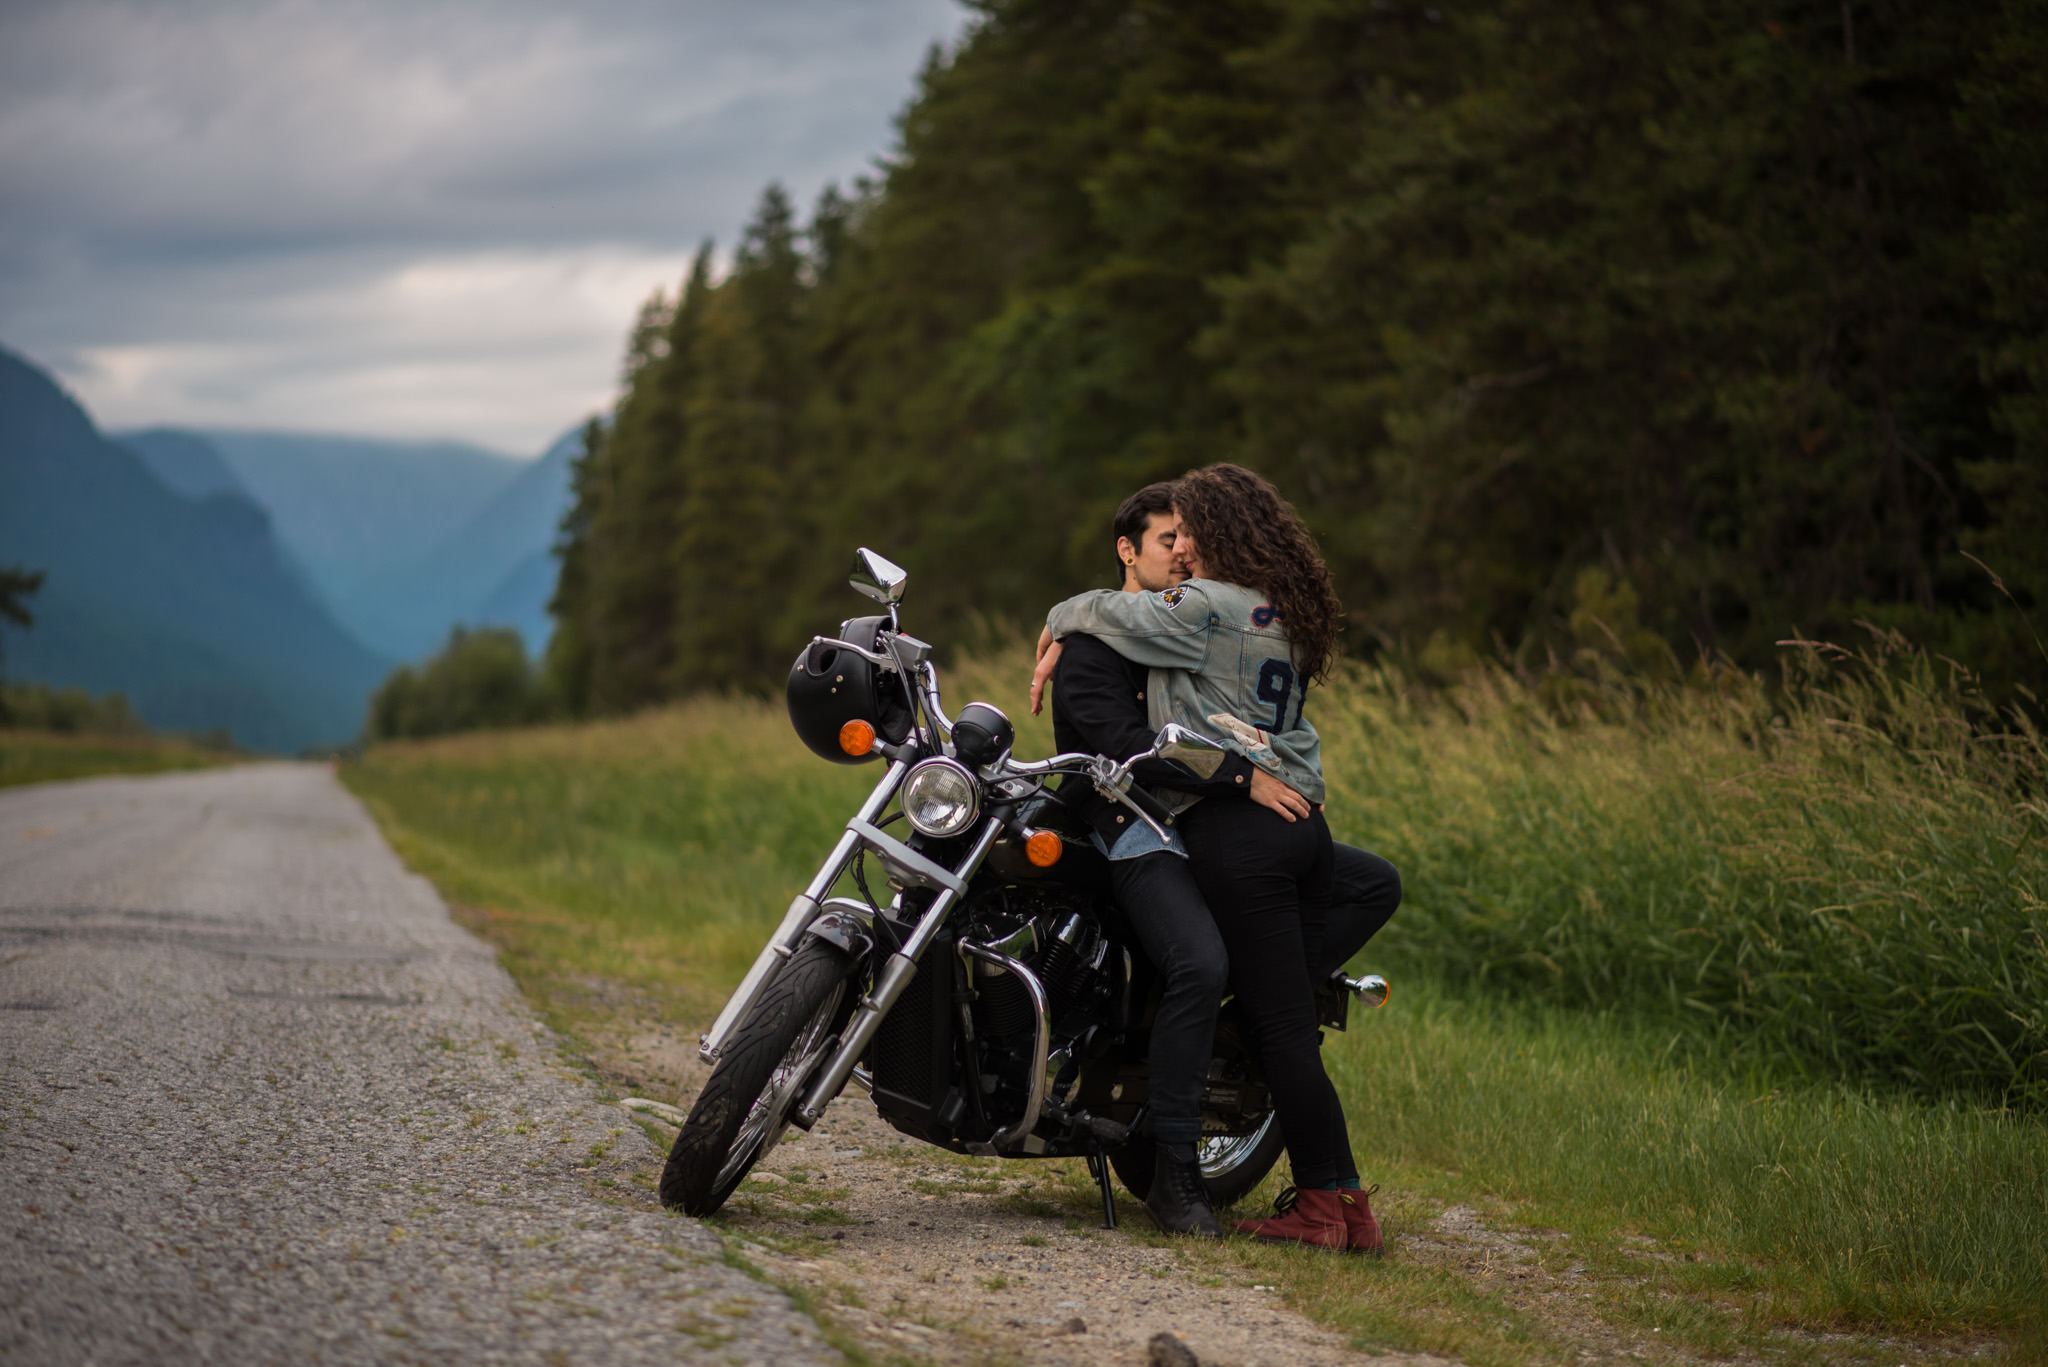 Engagement session at Pitt Lake in Pitt Meadows BC